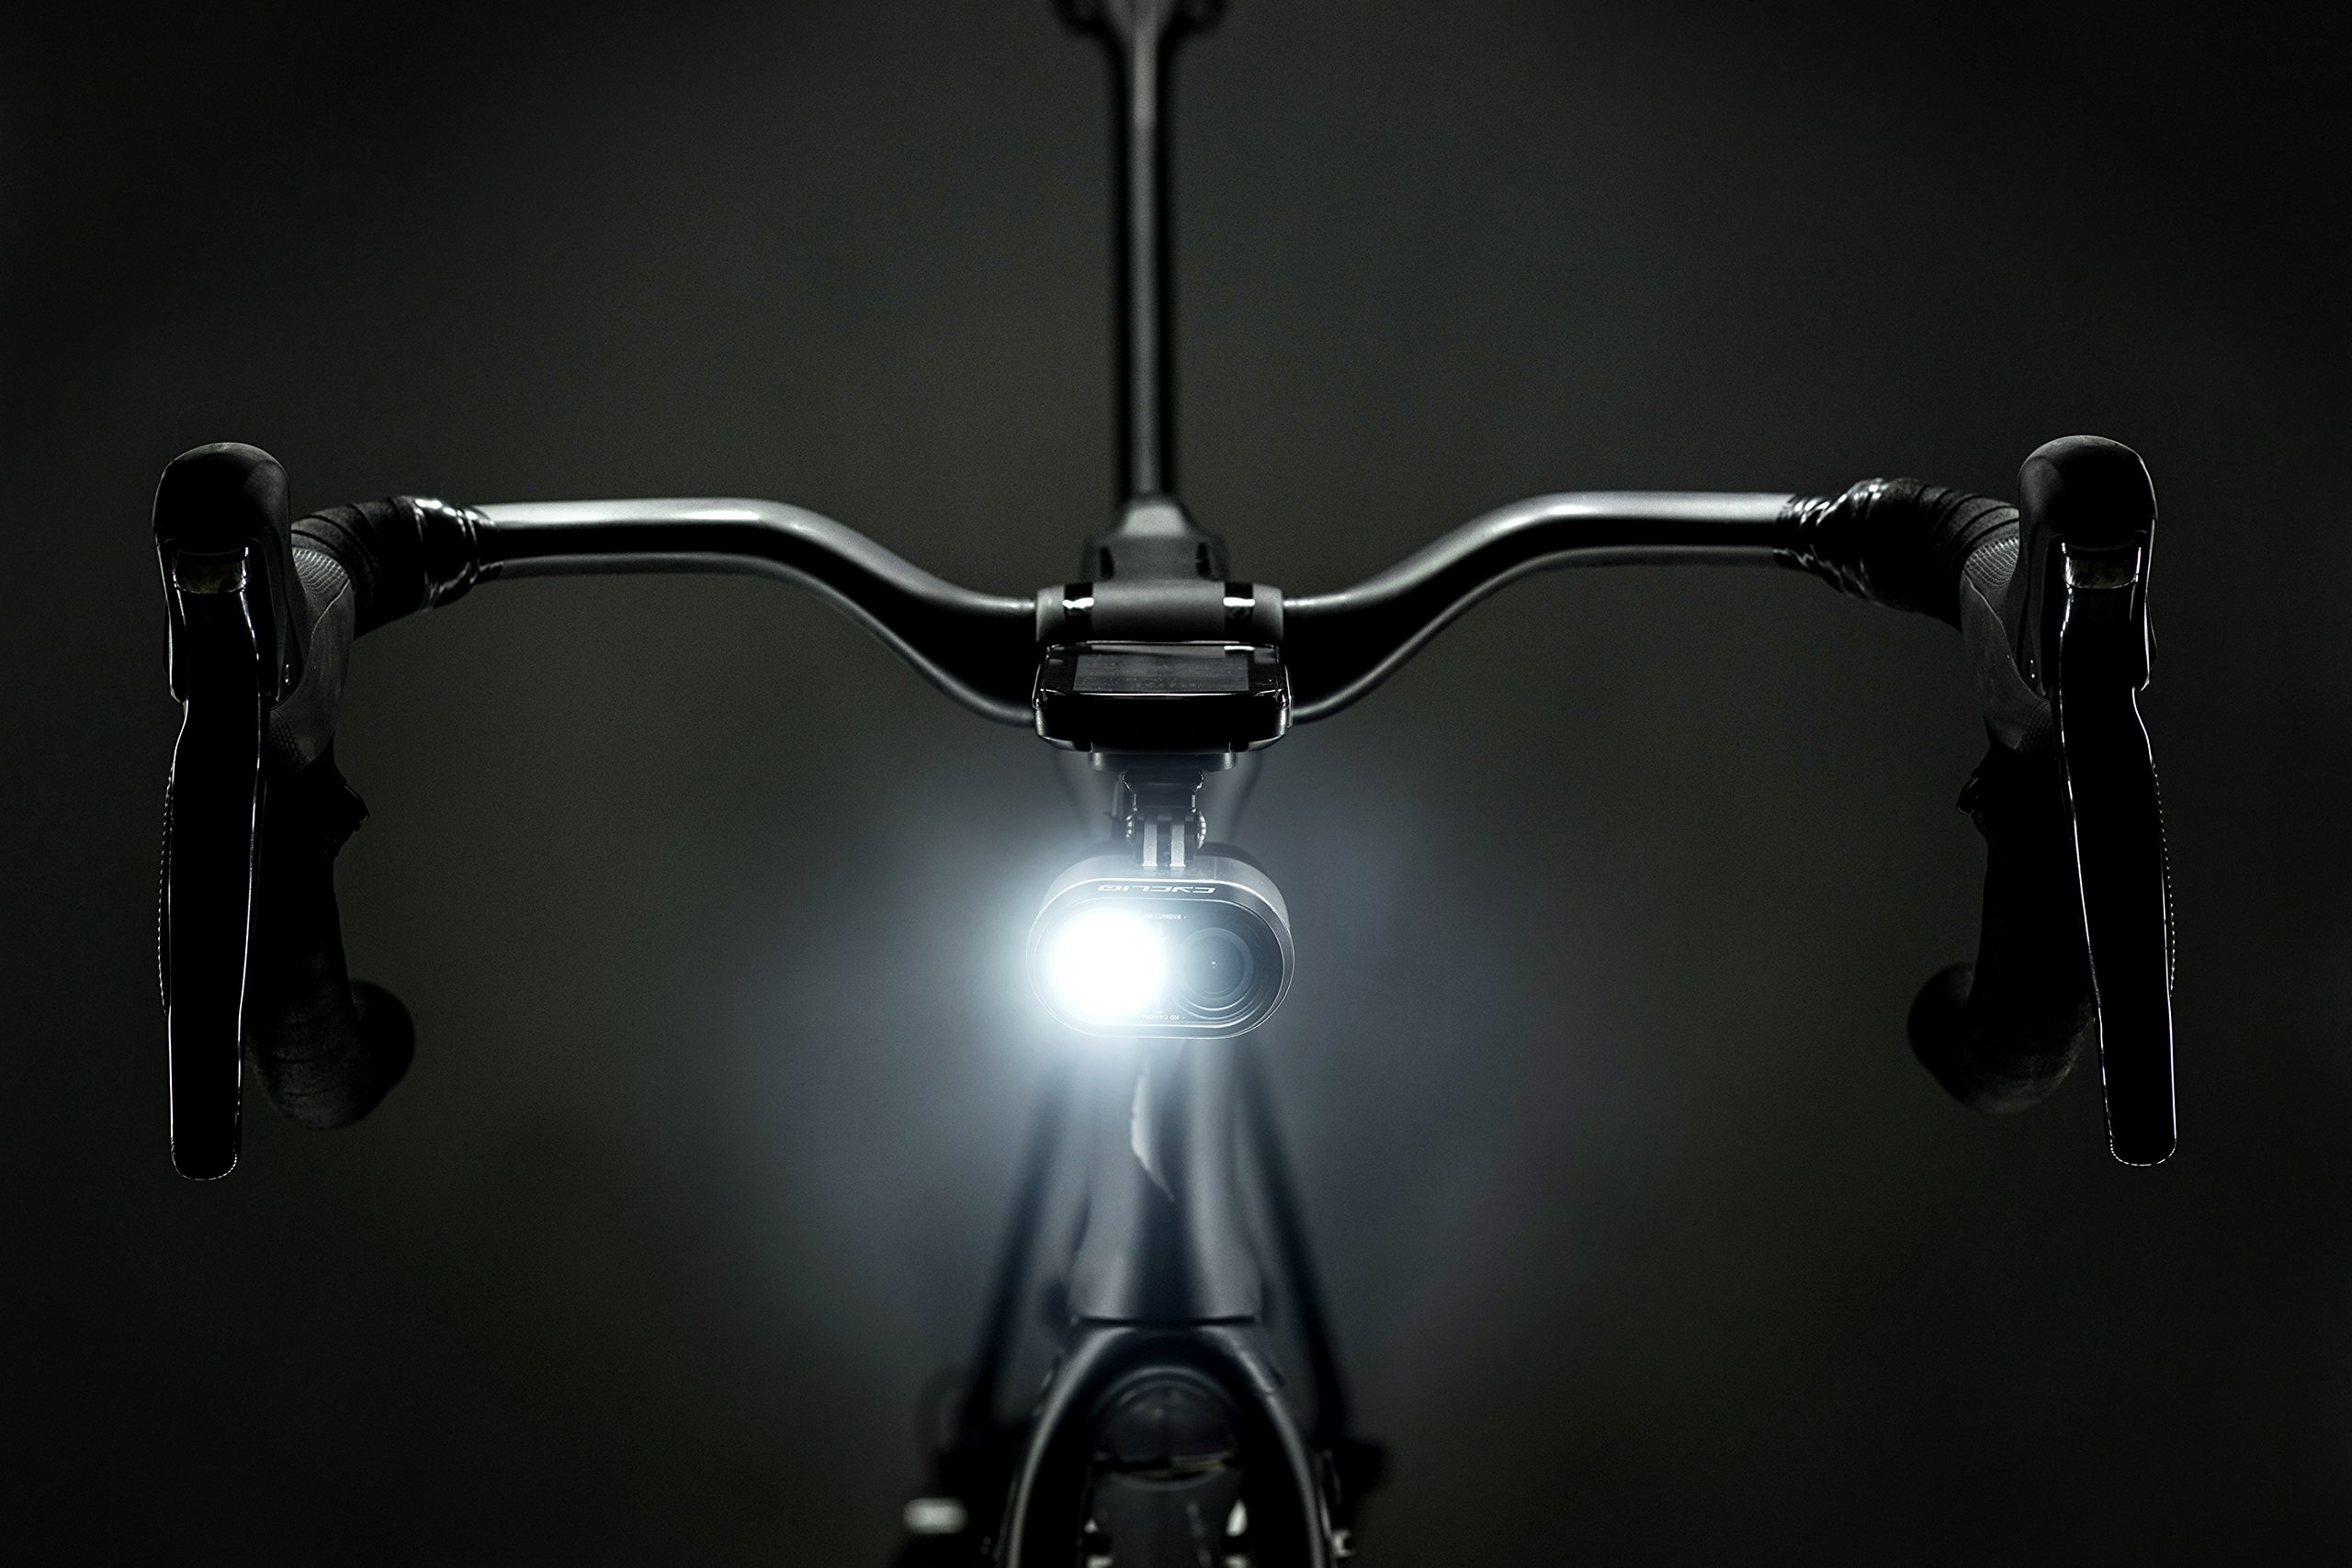 Fly12 Full HD Bike Camera and 400 Lumen Bicycle light by Cycliq (Image #5)